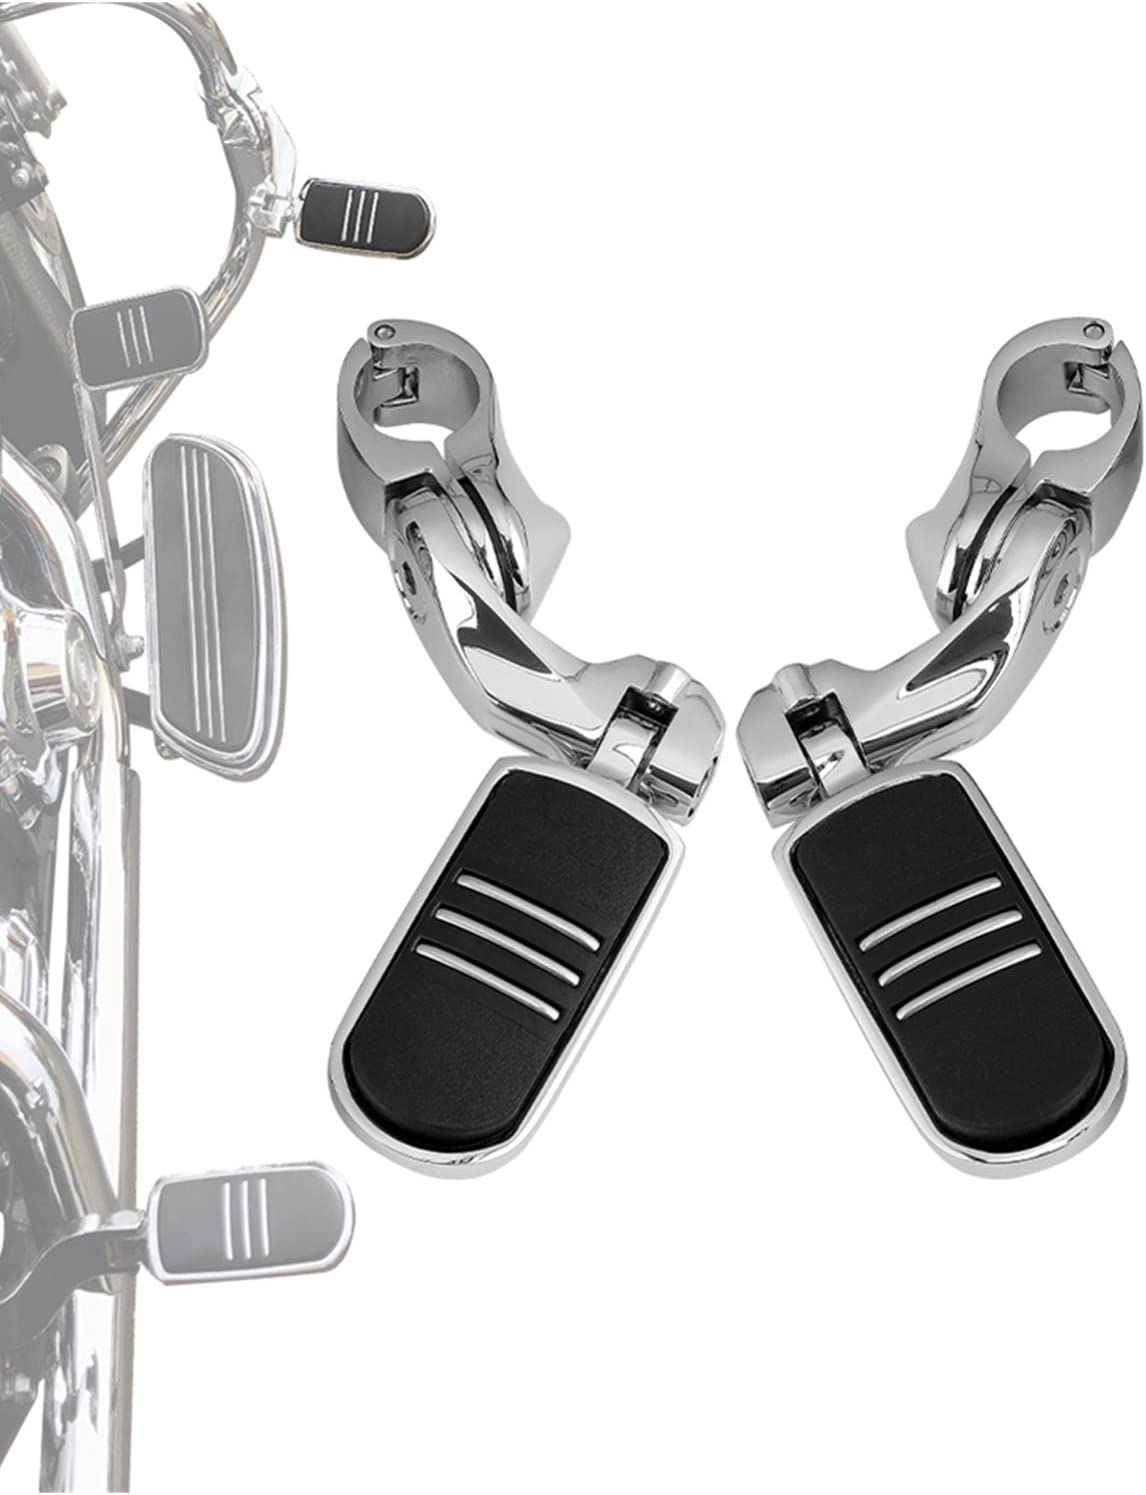 Motorcycle Max 60% Al sold out. OFF Highway Pegs Foot Peg for Sportster Electra R Softail